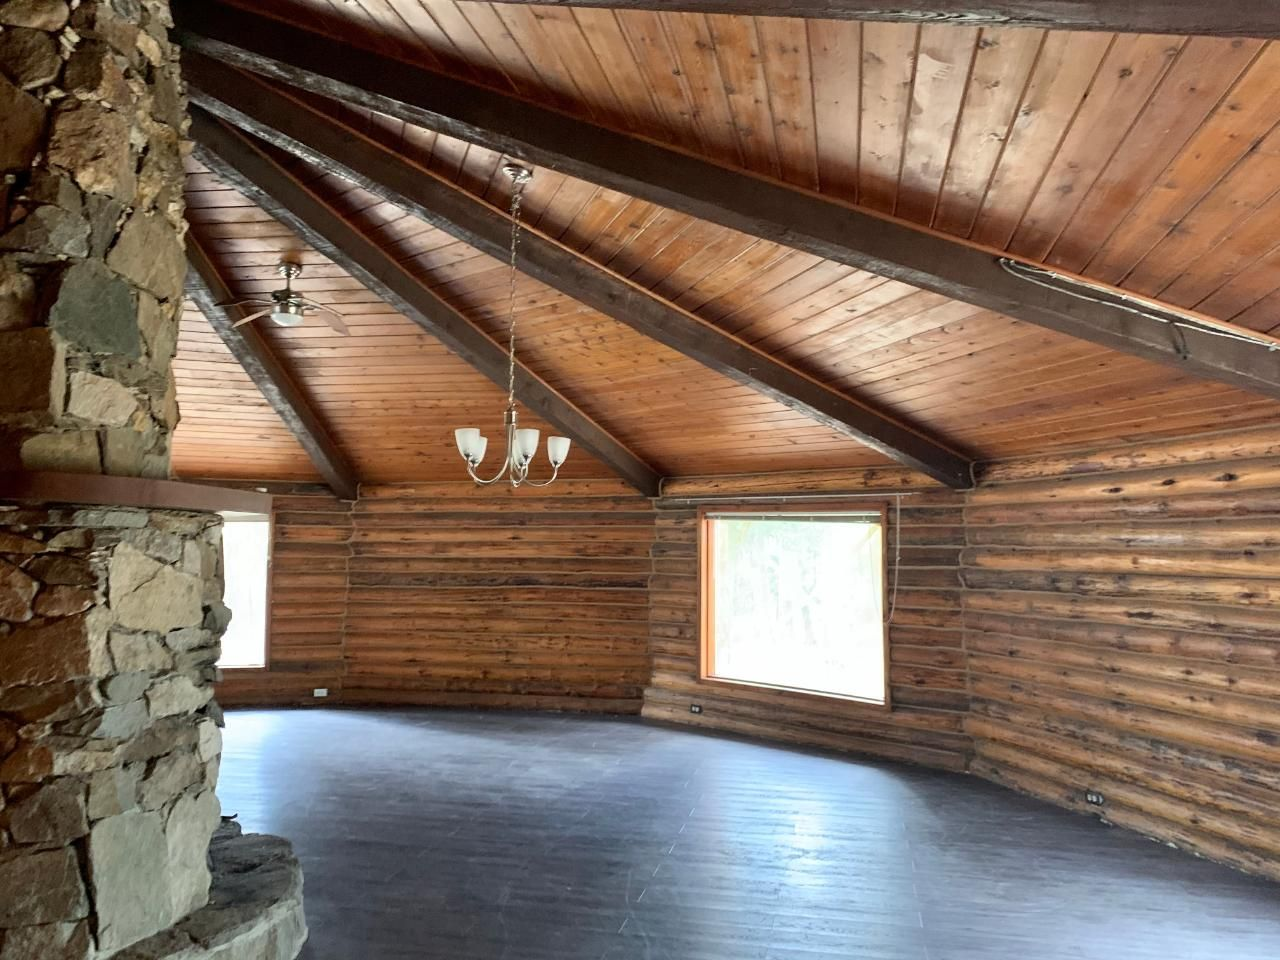 Photo 6: Photos: 2493 Pye Road in Clearwater: CW House for sale (NE)  : MLS®# 161588